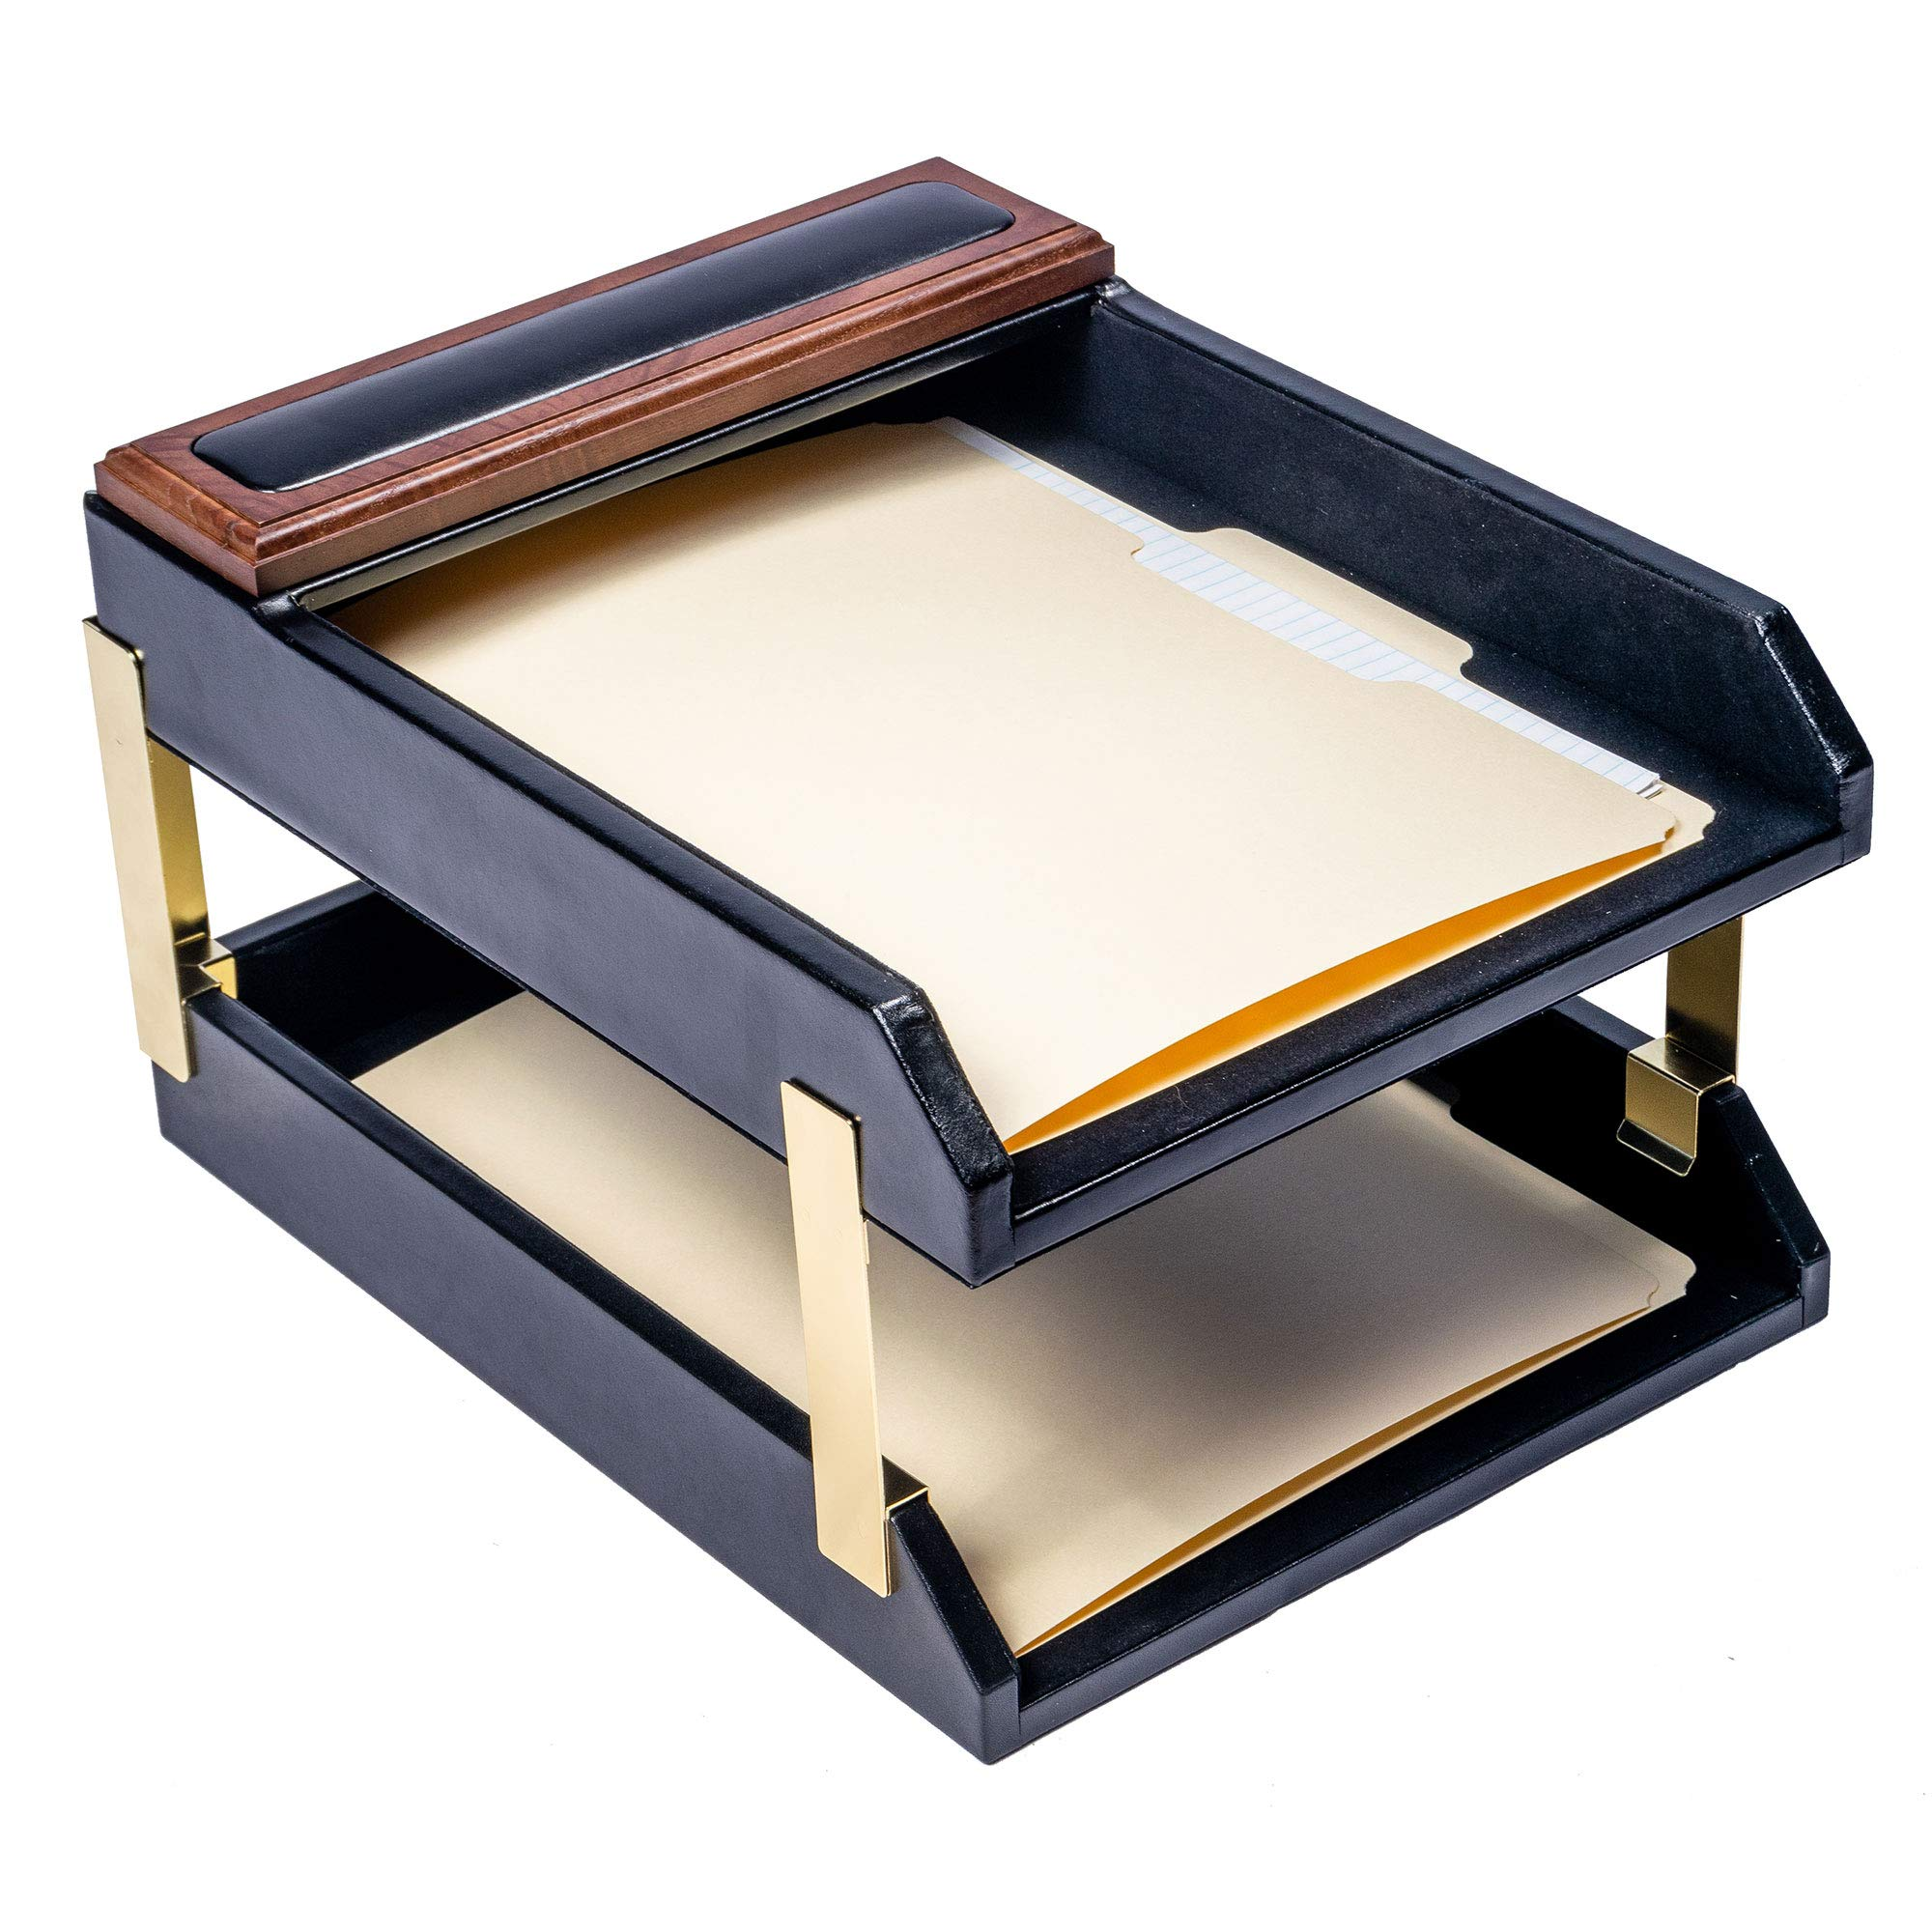 Dacasso Walnut & Leather Double Letter Trays (A8420) by Dacasso